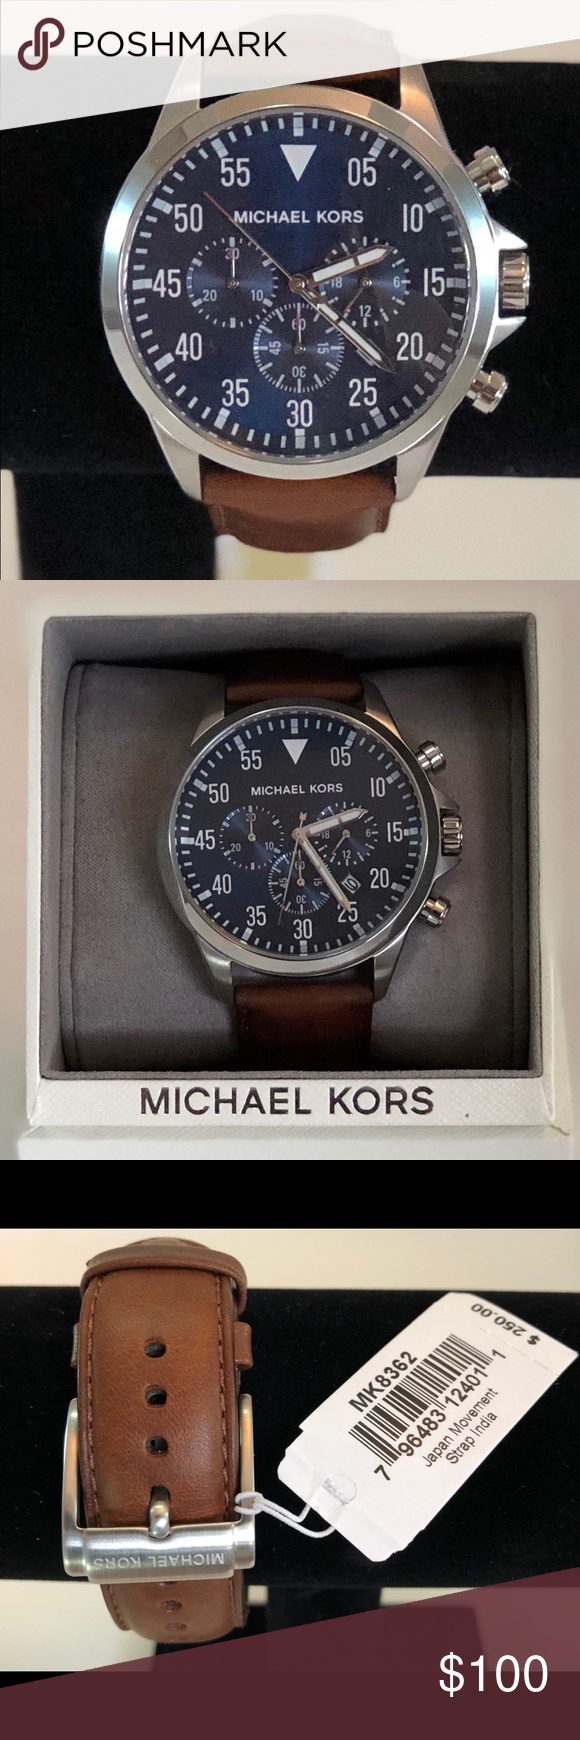 776a75380 Michael Kors Men's Gage Brown Leather Strap Watch MICHAEL KORS MK-8362  CHRONOGRAPH 24 HOURS